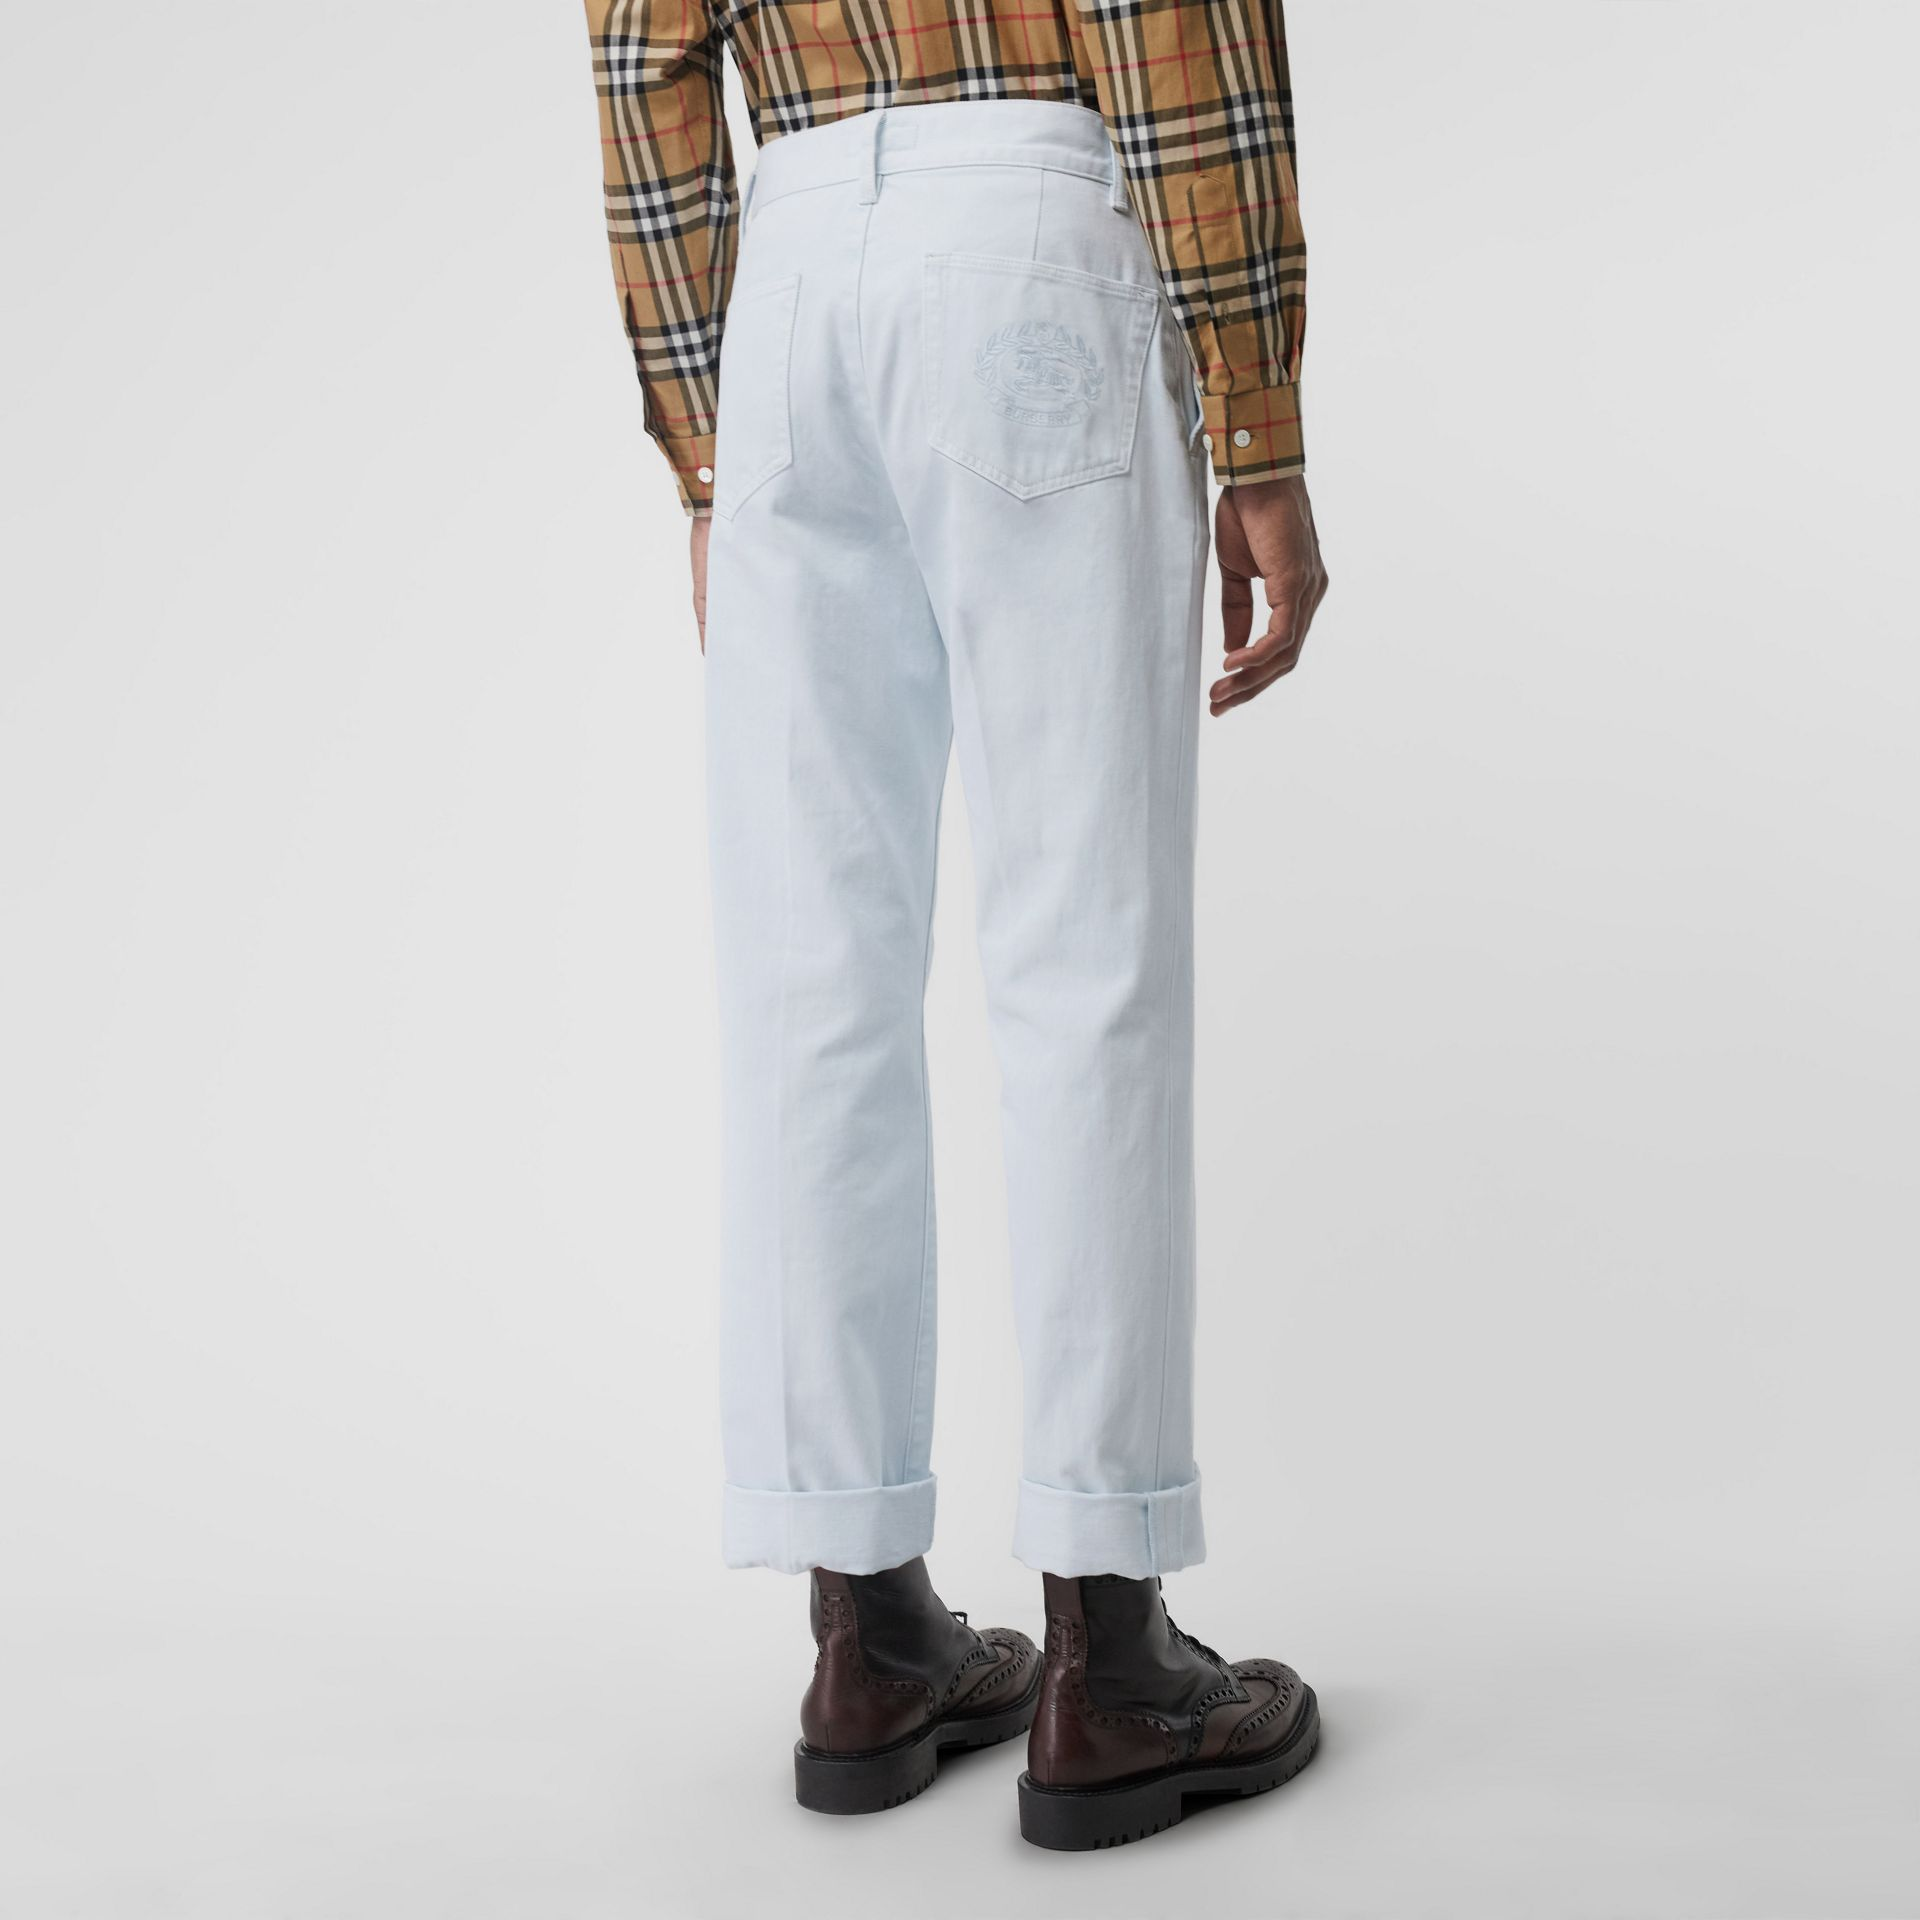 Embroidered Crest Relaxed Fit Jeans in Chalk Blue - Men | Burberry United States - gallery image 2